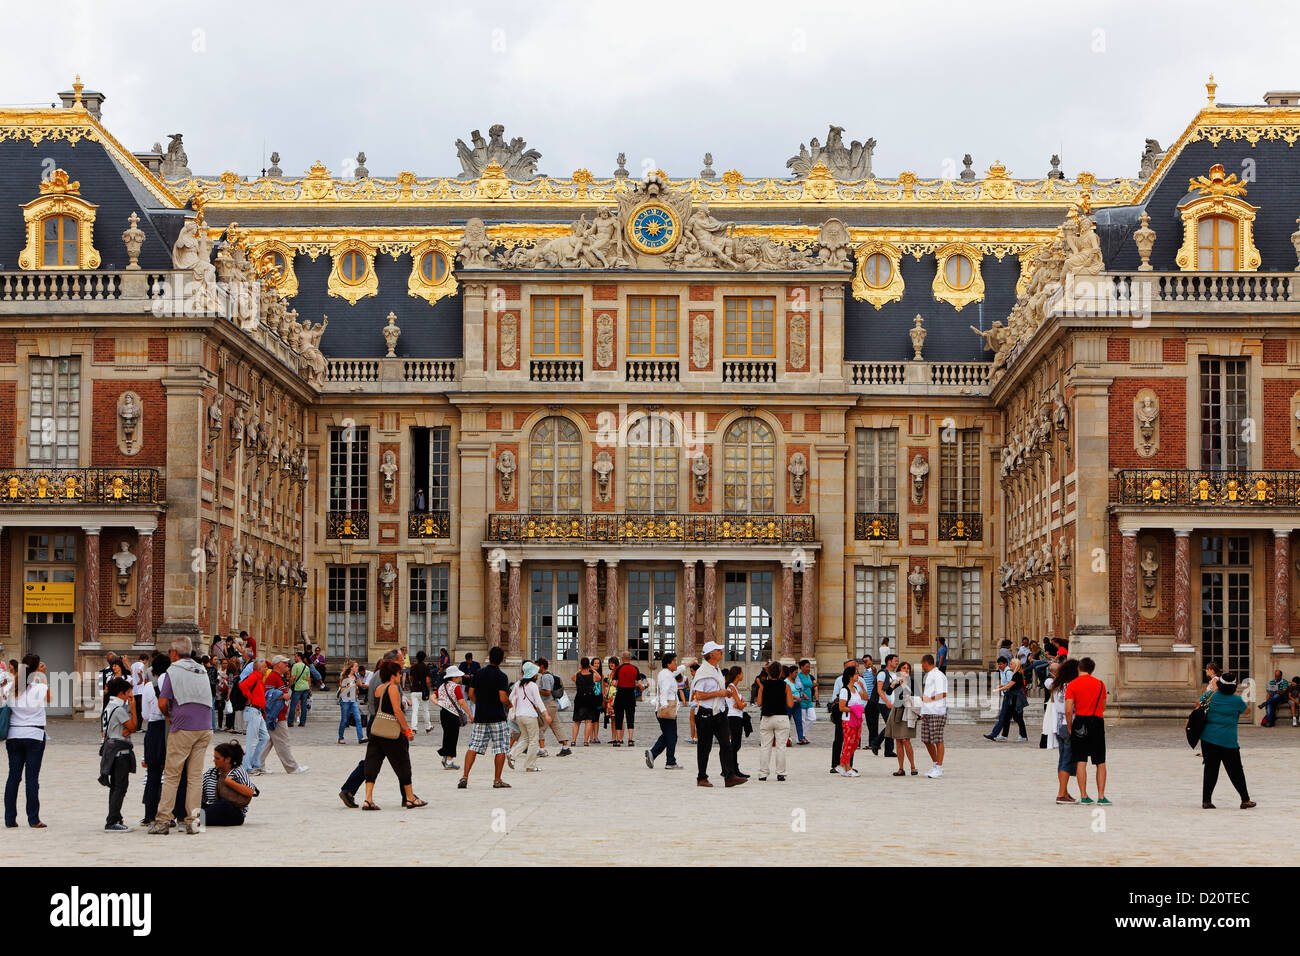 people in front of the palace of versailles ile de france france stock photo 52879636 alamy. Black Bedroom Furniture Sets. Home Design Ideas